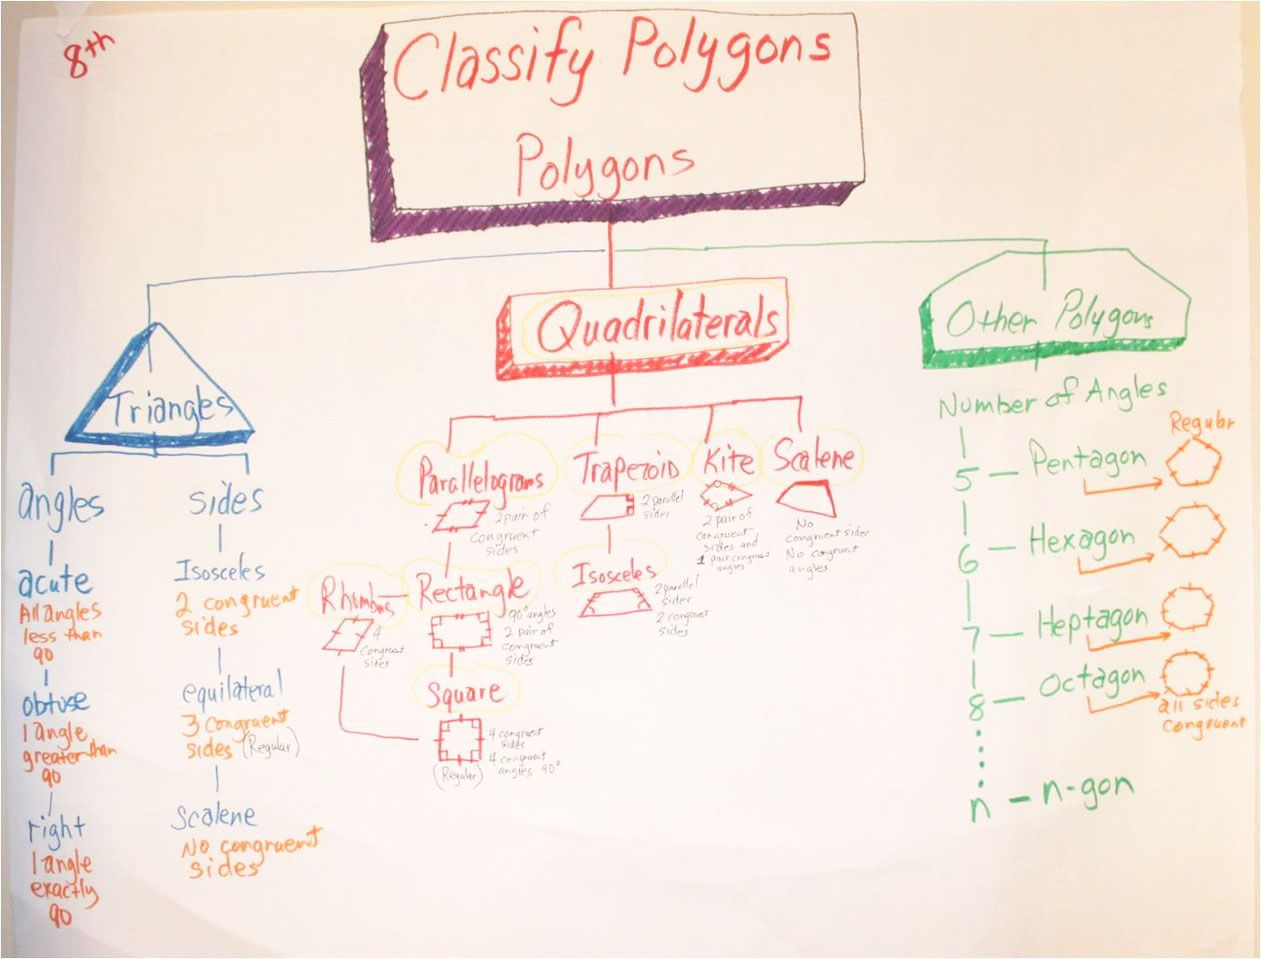 Midweek Map: Classifying Polygons - The Official Thinking